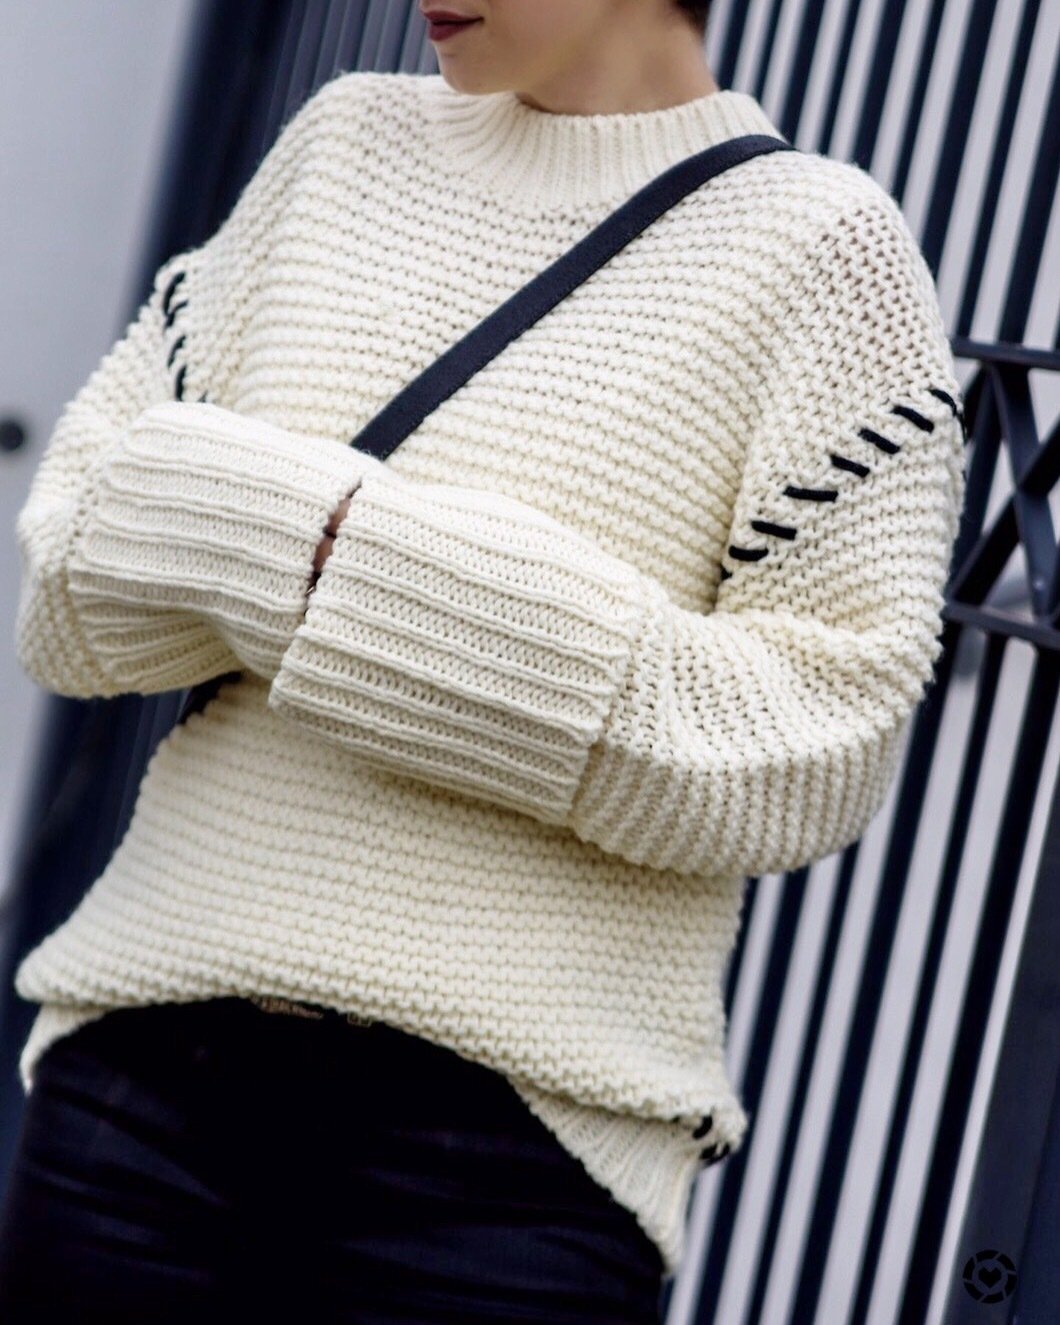 30 essential winter pieces, sweaters, coats, boots, accesories